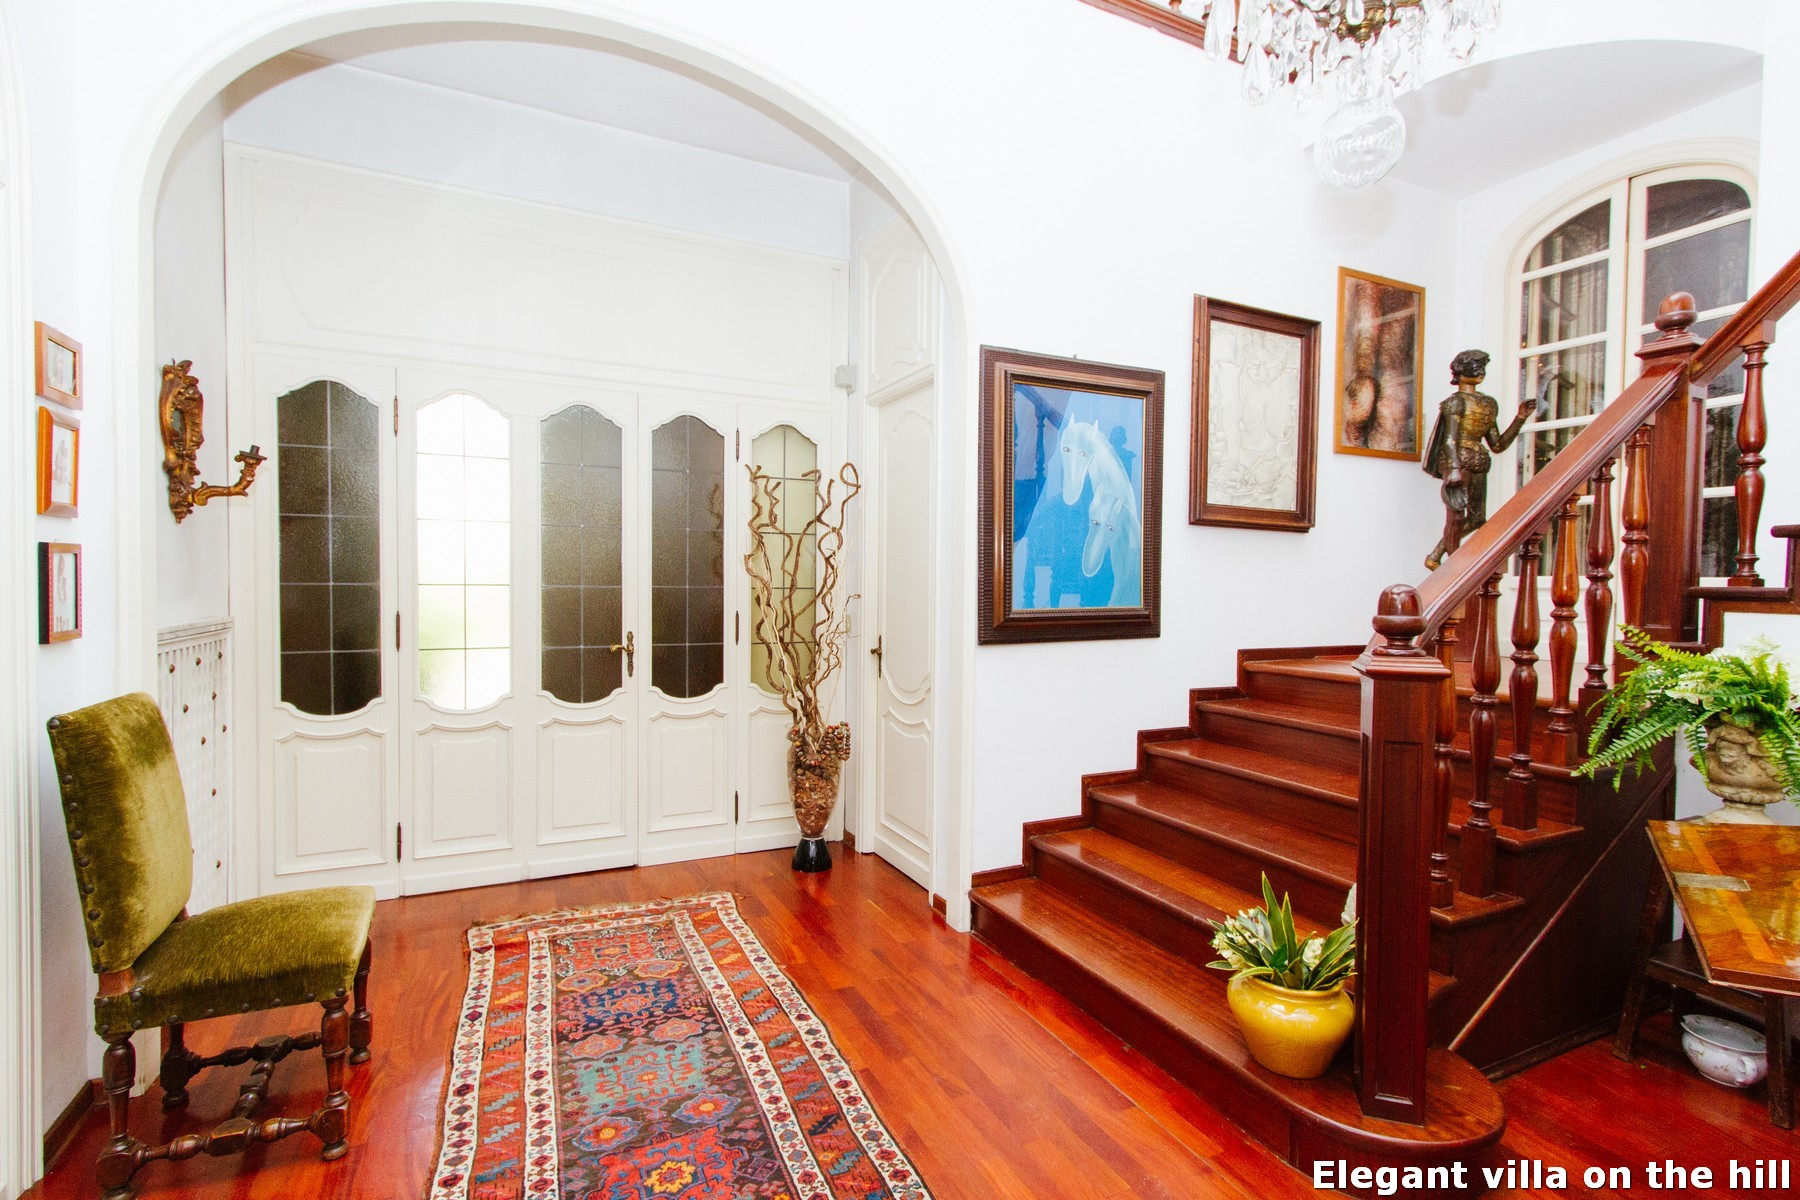 Additional photo for property listing at Elegant villa on the hill Viale XXV Aprile Torino, Turin 10133 Italie